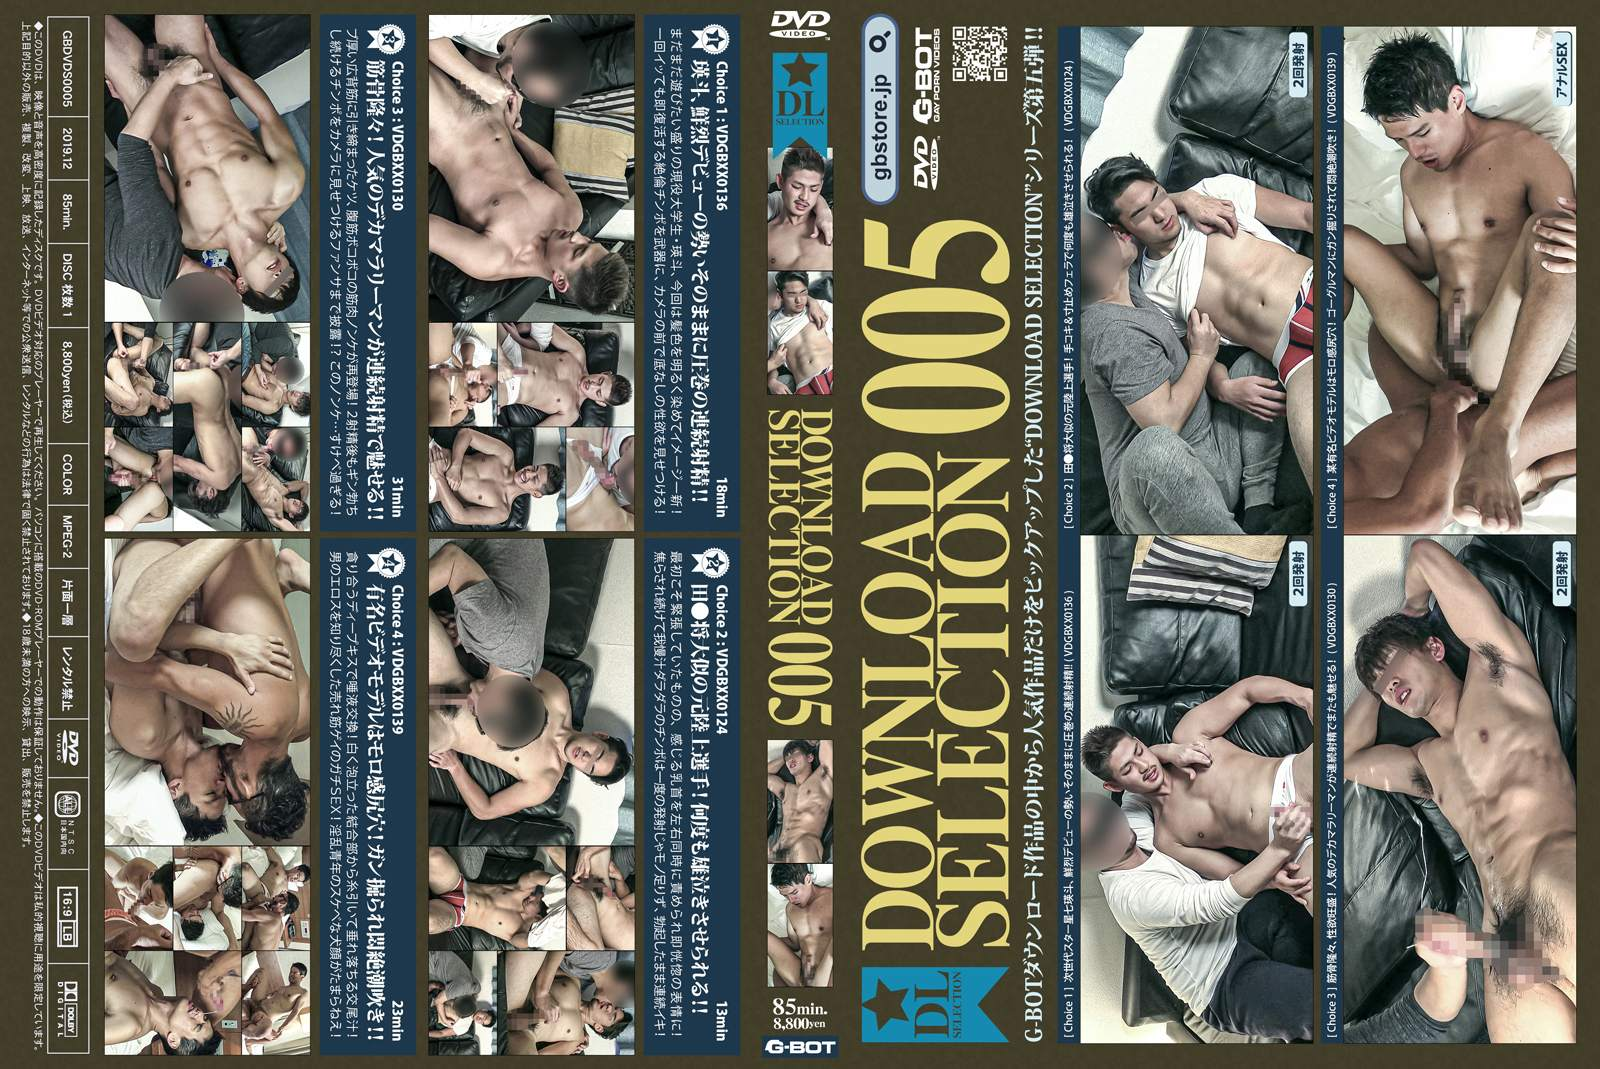 G-BOT – DOWNLOAD SELECTION 005 – GBDVDS0005